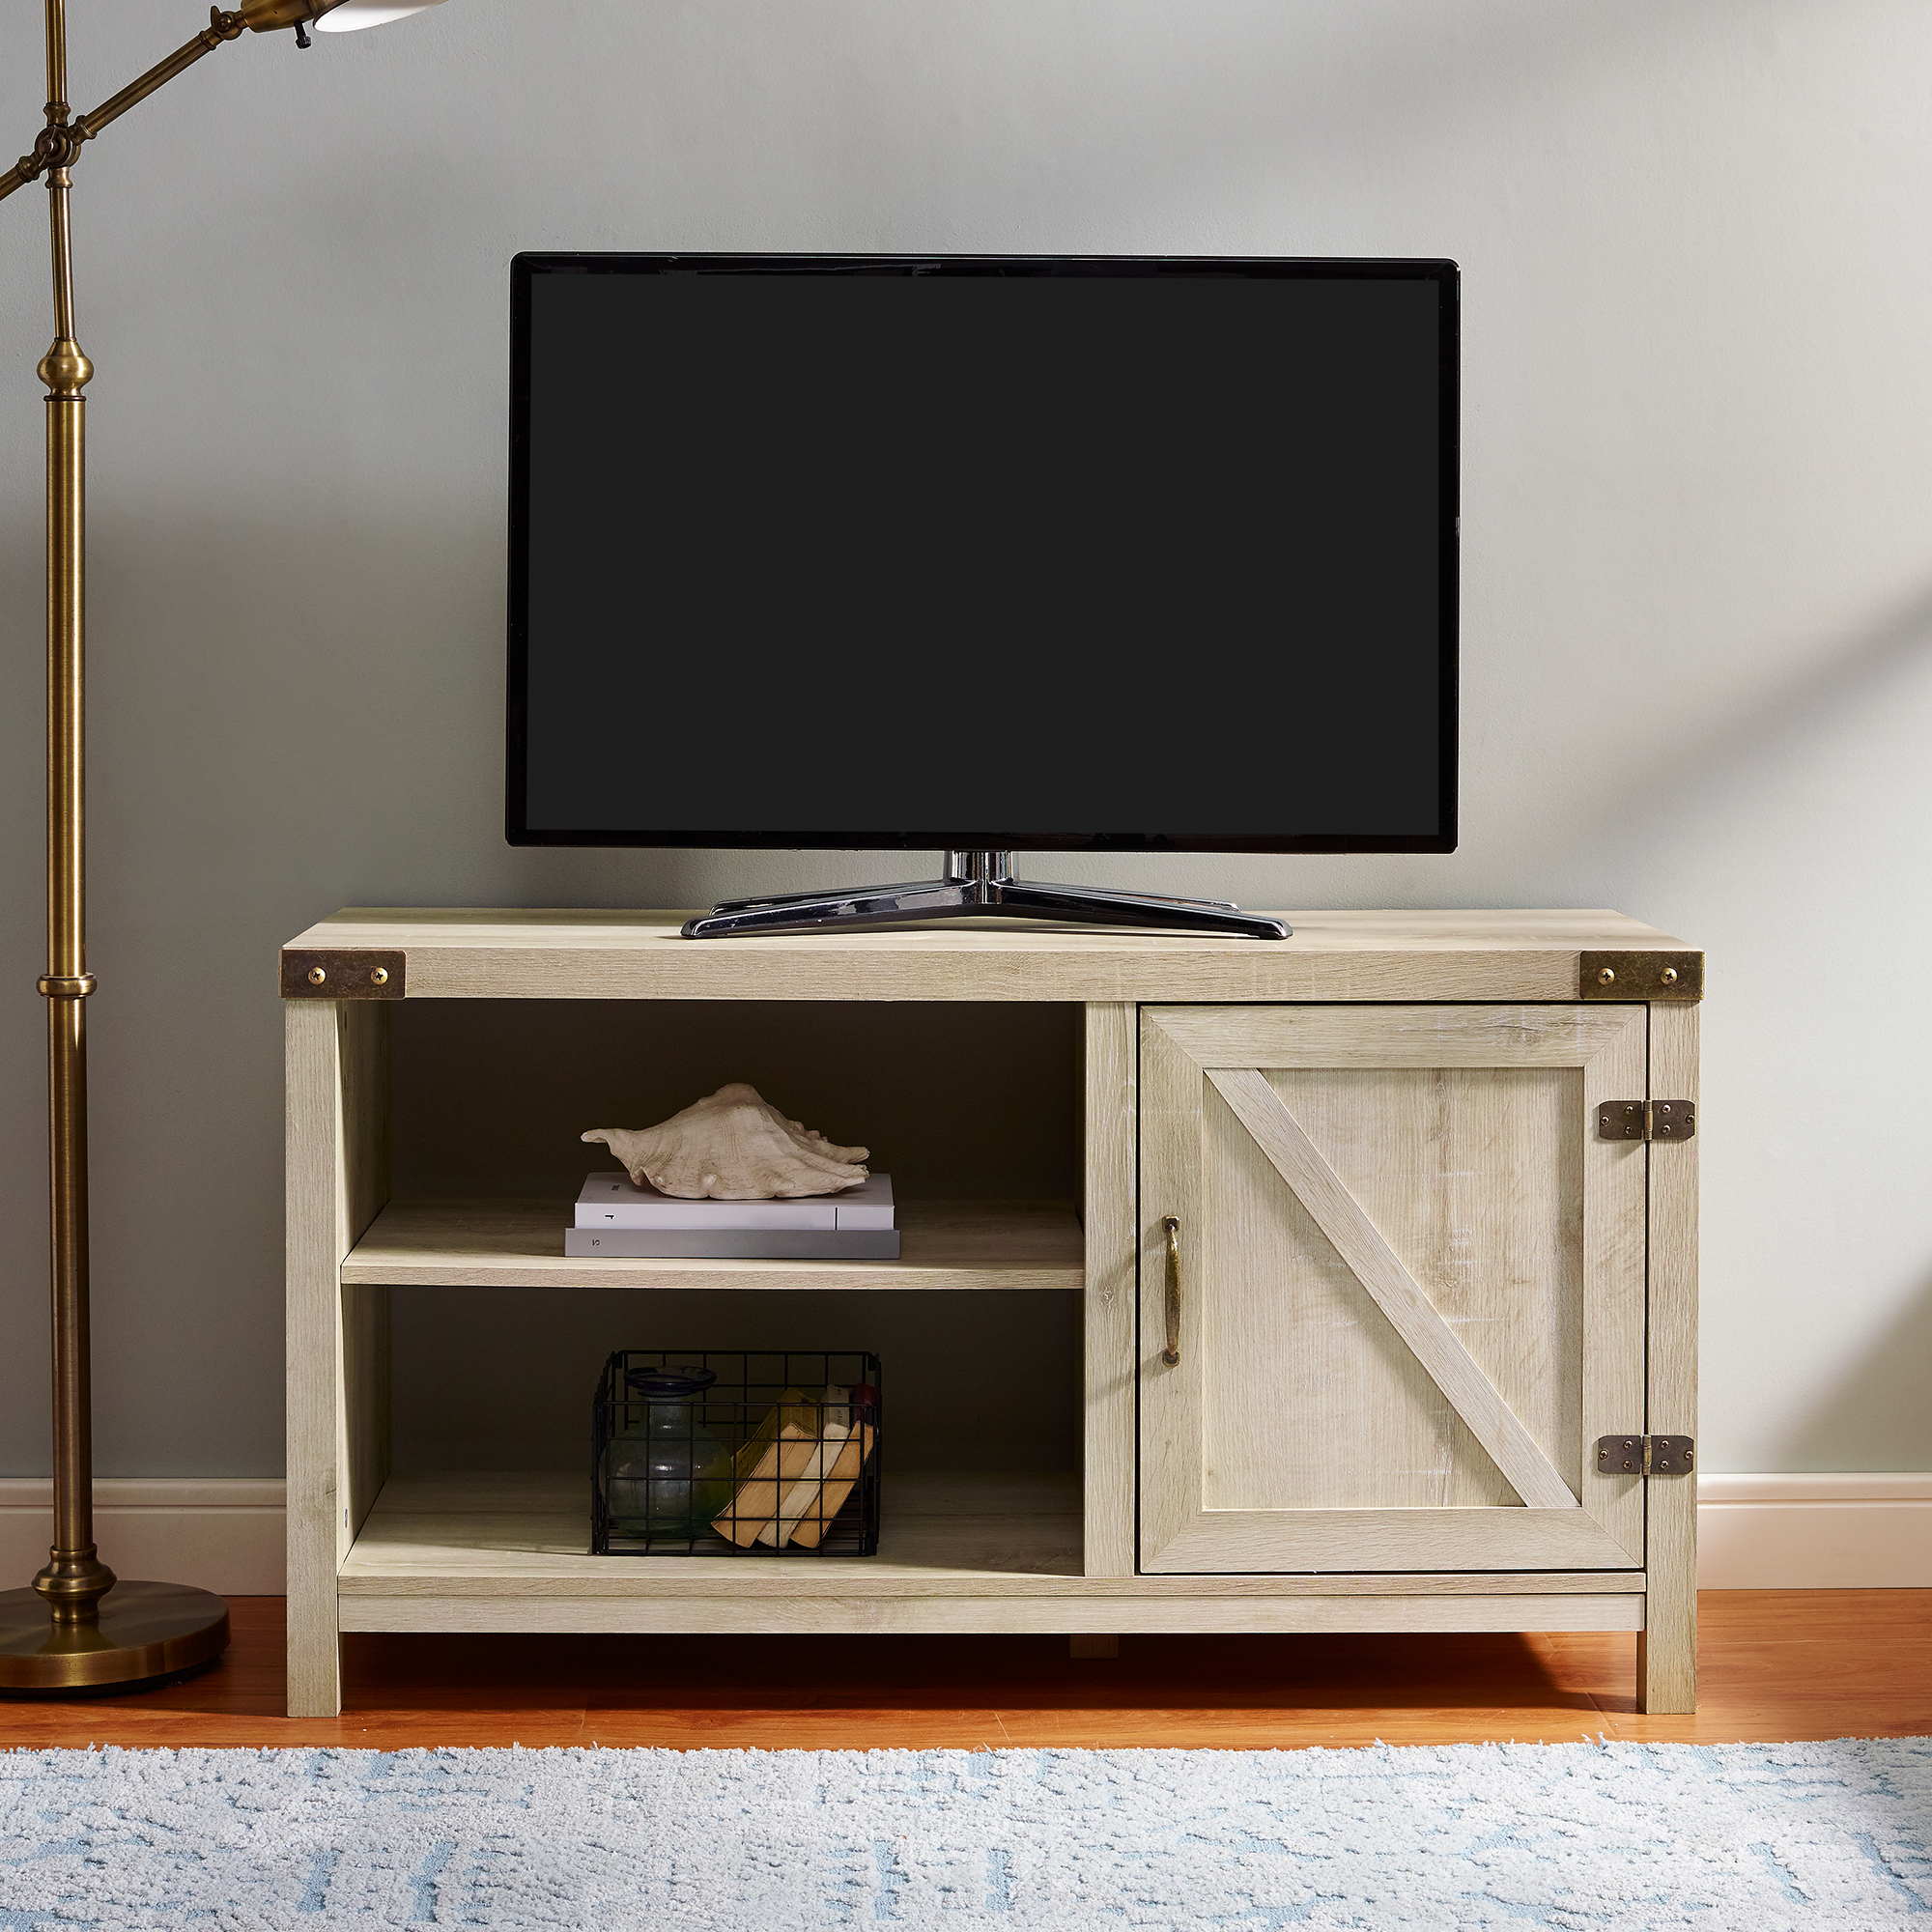 """Woven Paths Farmhouse Barn Door Tv Stand For Tvs Up To 50 In Lansing Tv Stands For Tvs Up To 50"""" (View 2 of 20)"""